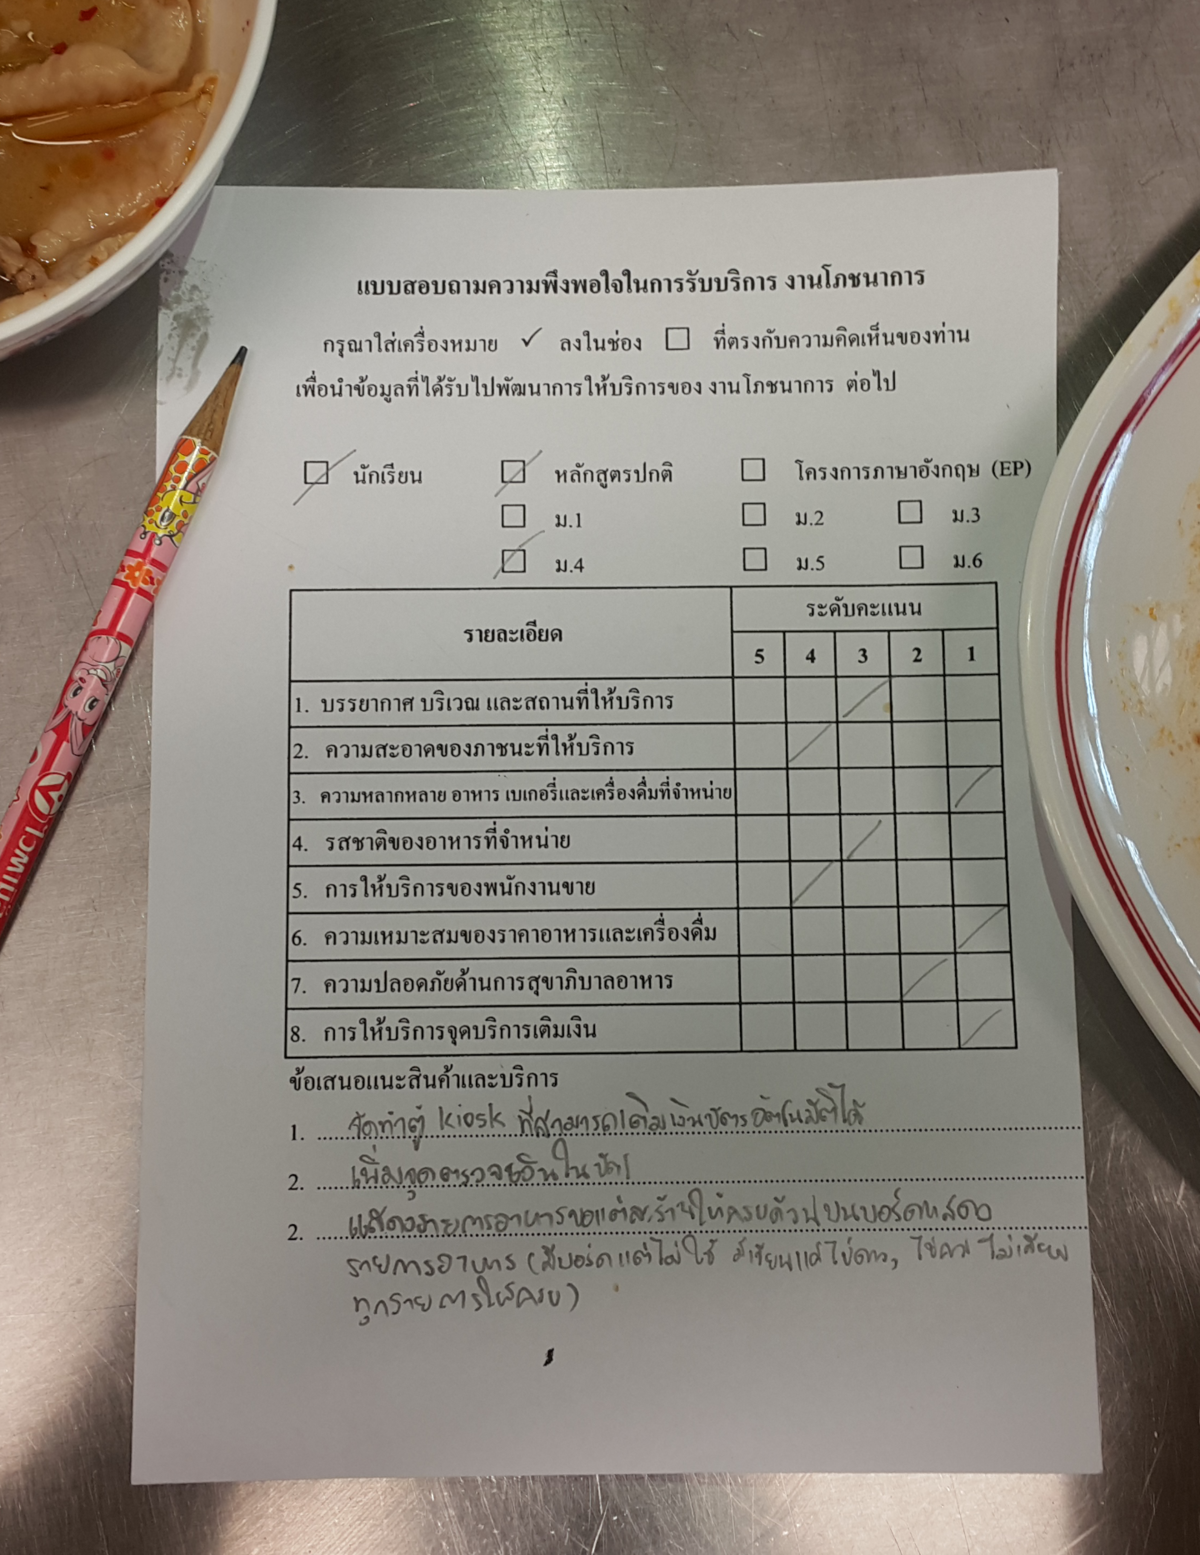 016 Research Paper 1200px Questionaire In Thai Market Questionnaire Sample Questions Striking Pdf Full